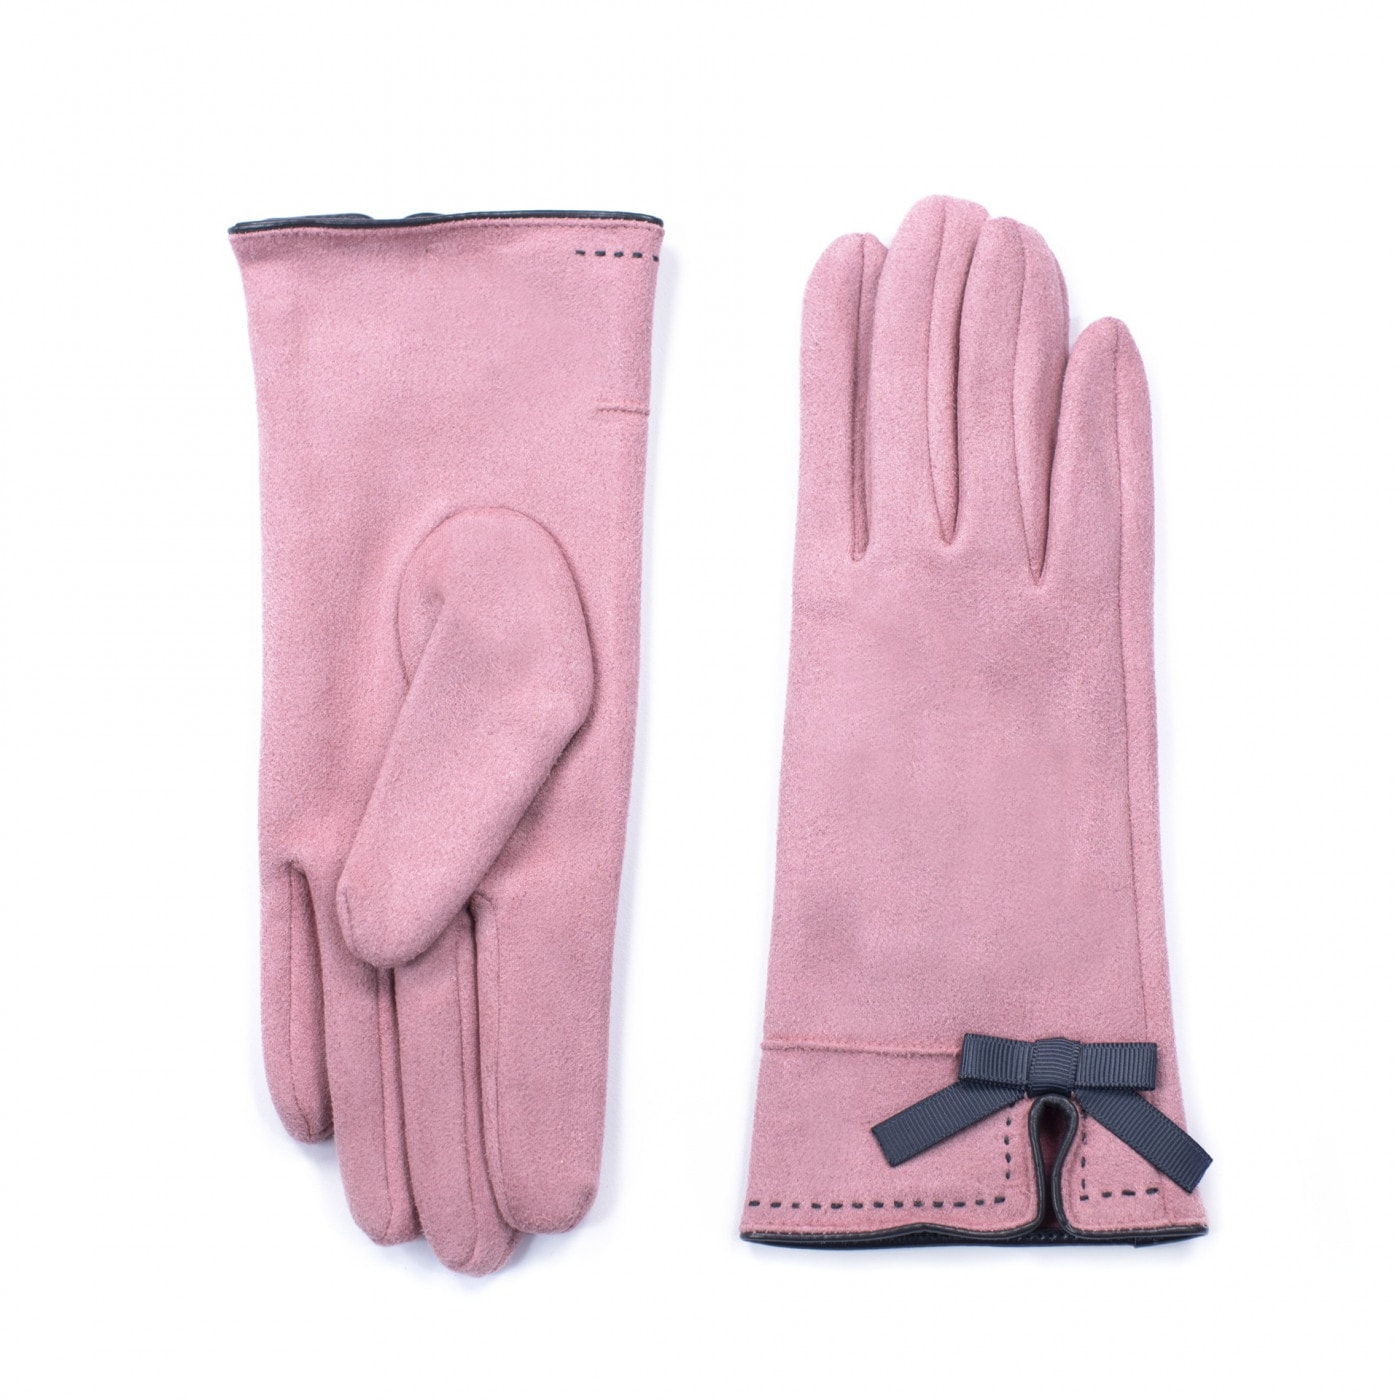 Art Of Polo Woman's Gloves rk19283